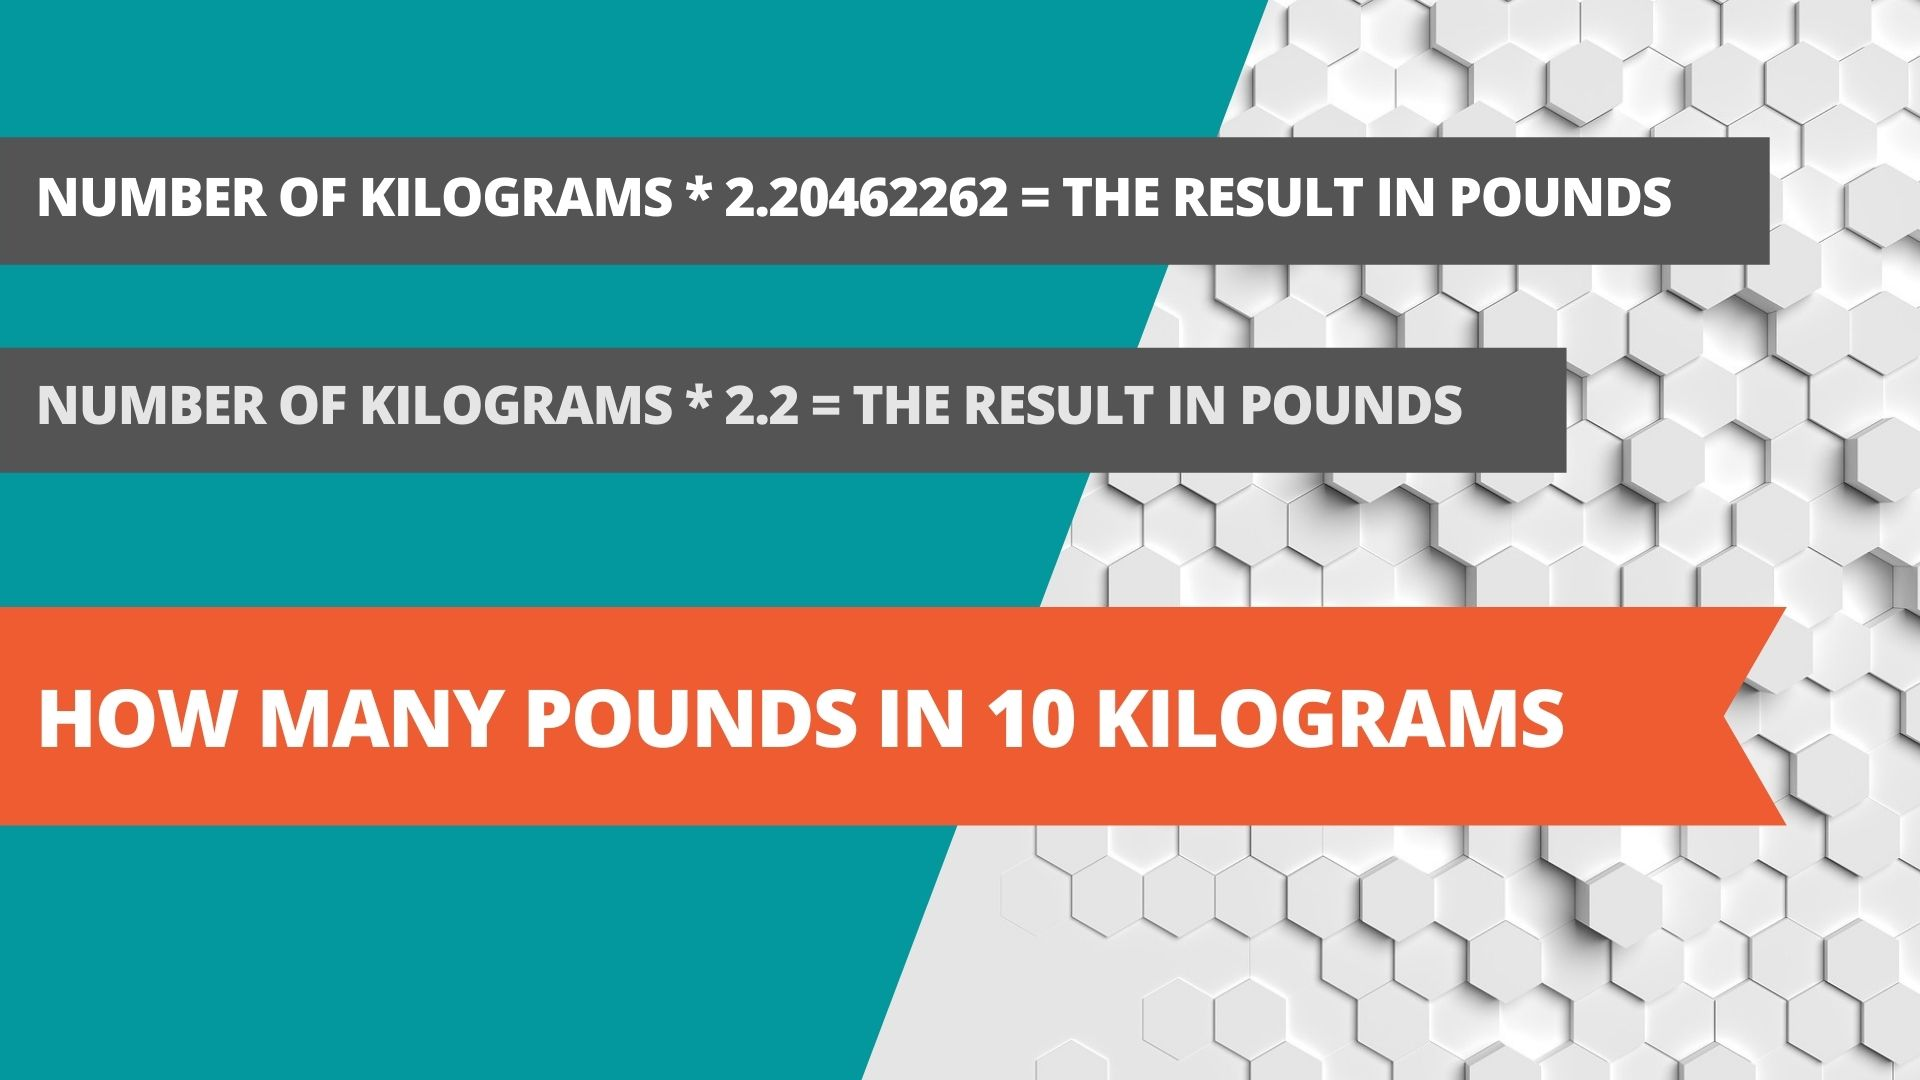 How many pounds in 10 kilograms